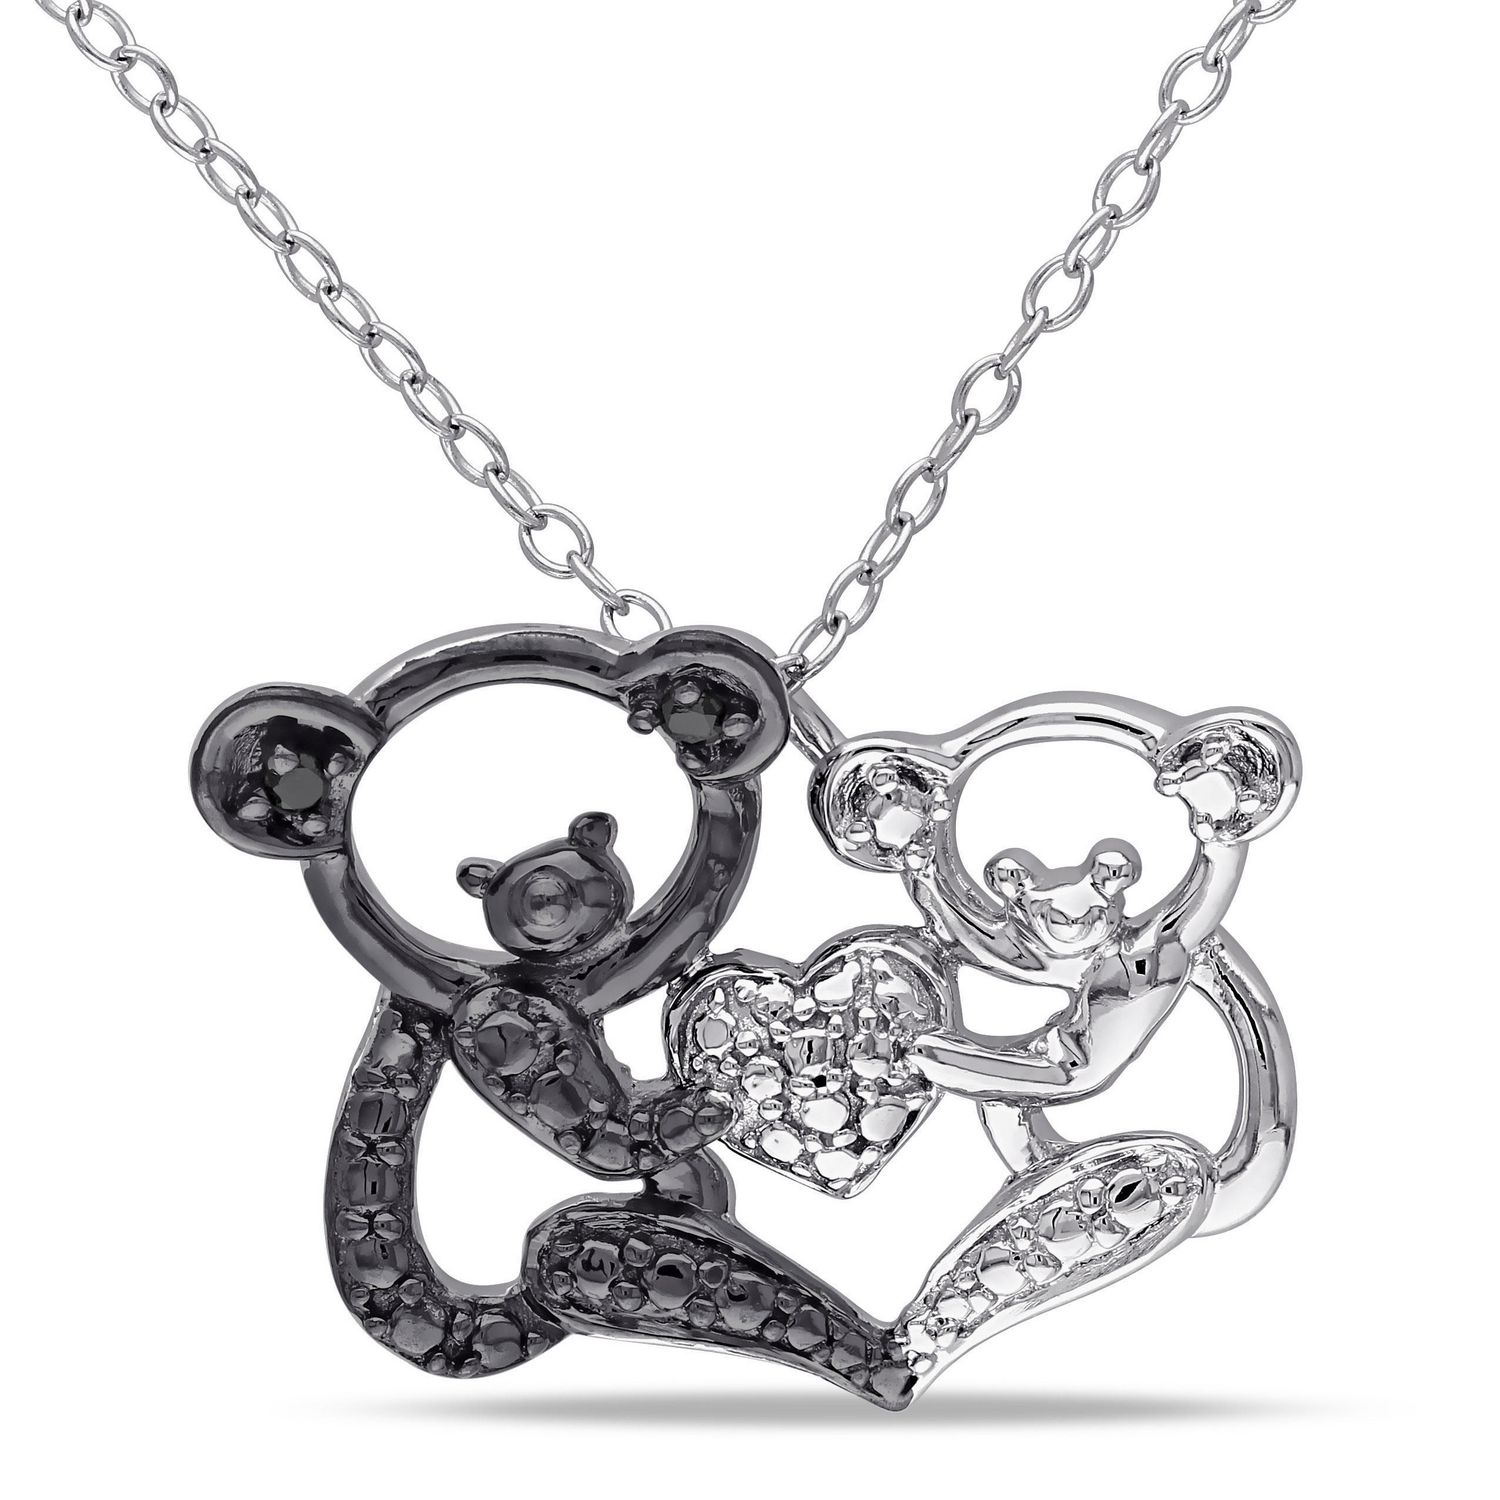 pendant products enlarged teddy bear necklace necklaces jewelry pomellato